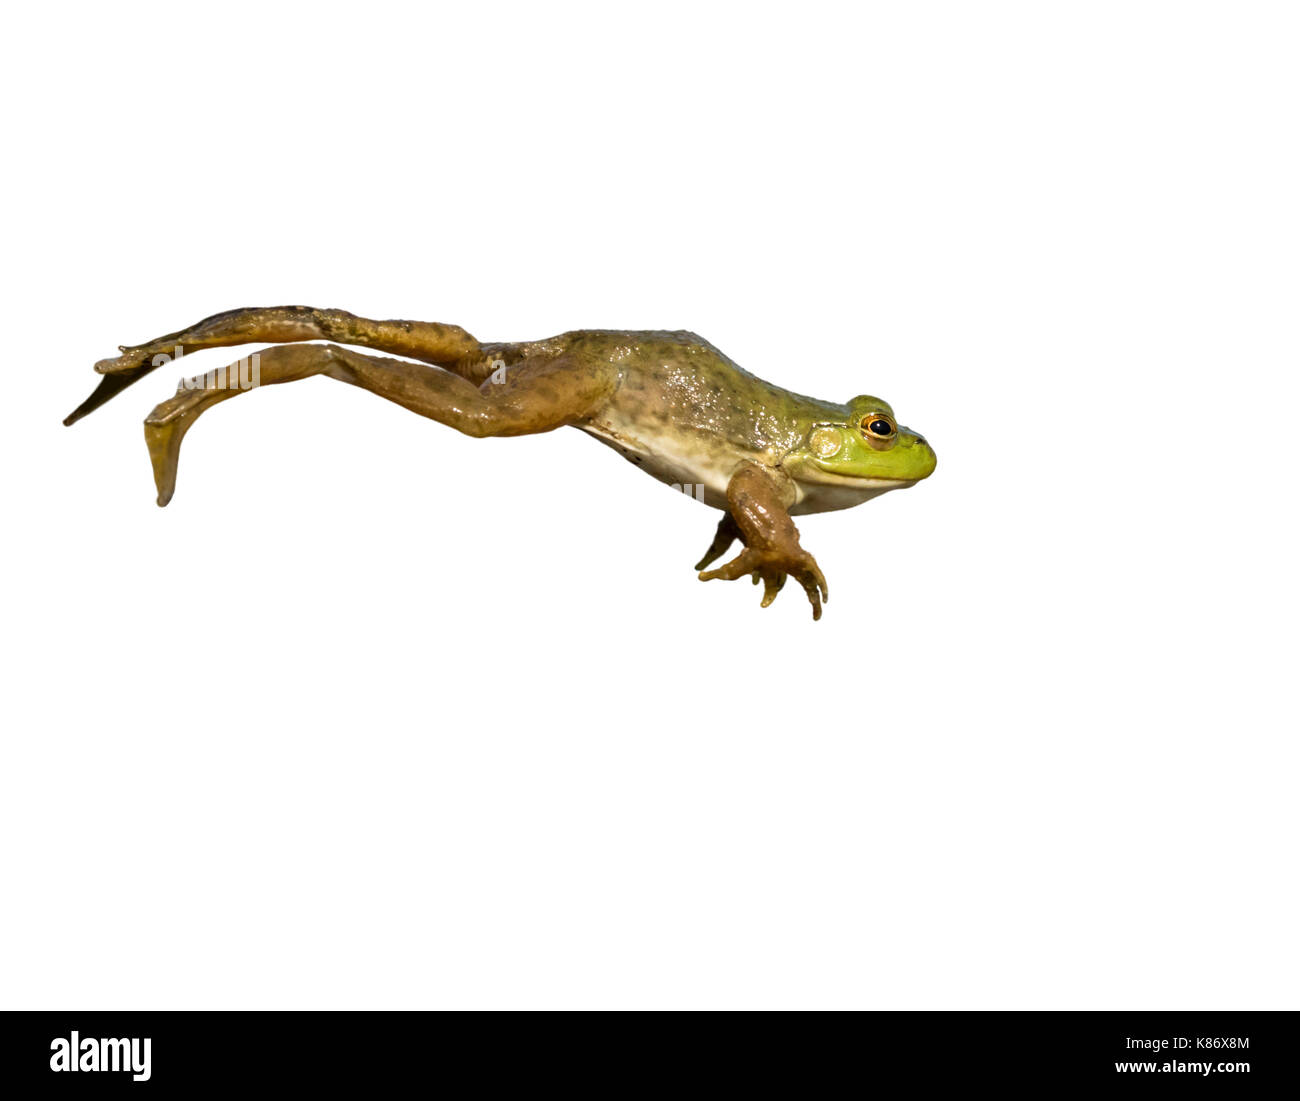 American bullfrog (Lithobates catesbeianus) leaping, isolated on white background. - Stock Image